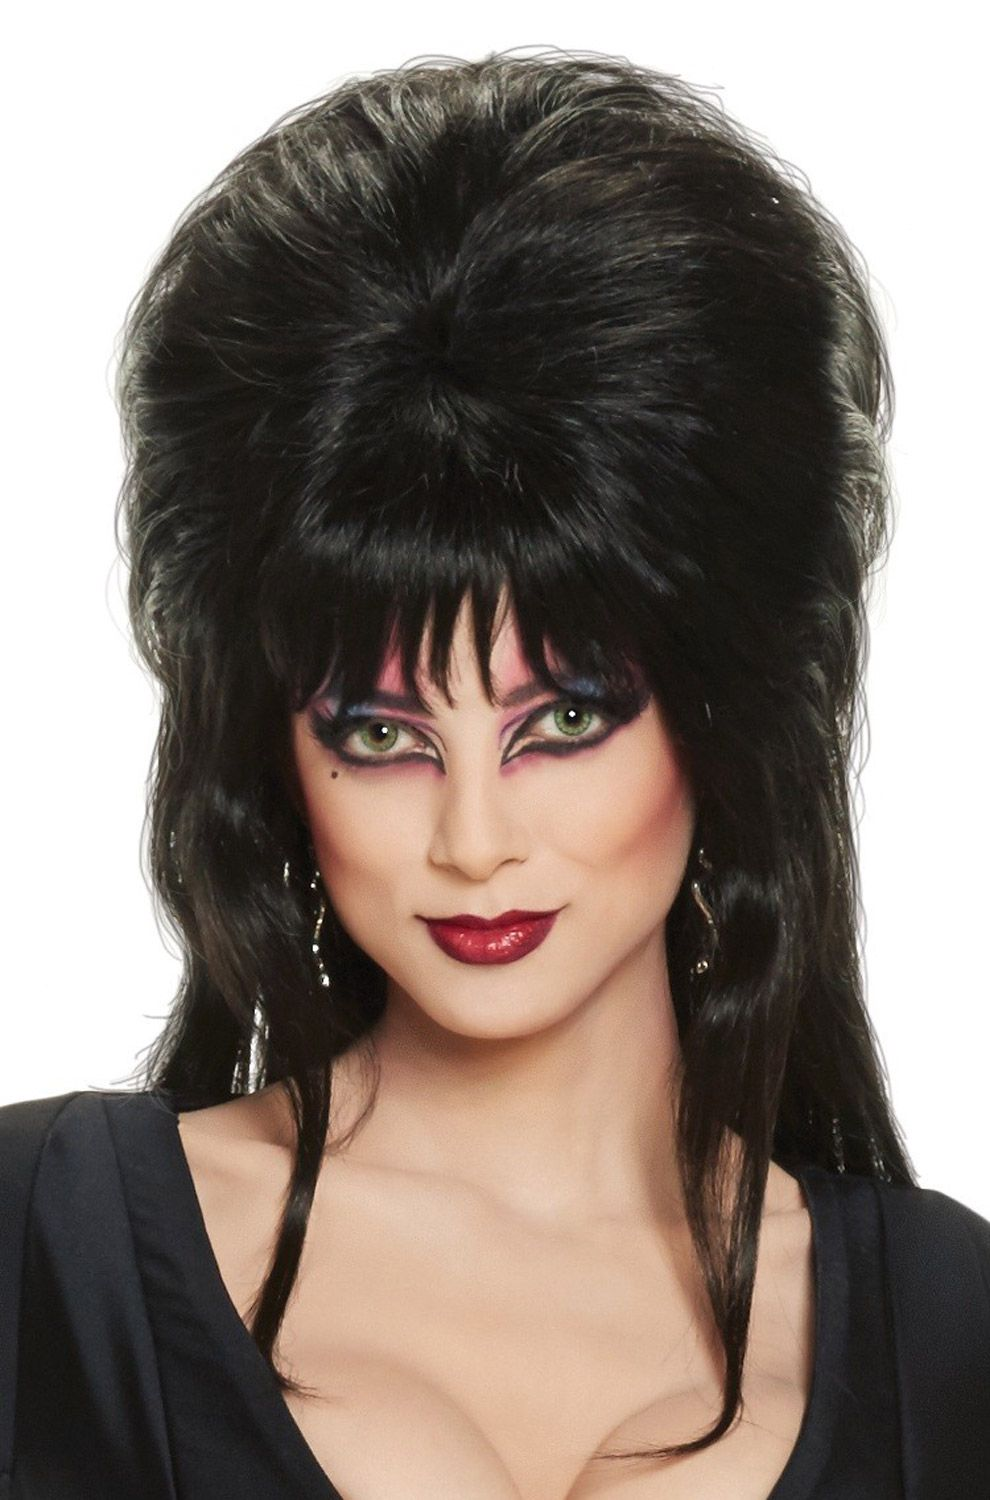 a73c00be3fa64b Check out the deal on Elvira Deluxe Adult Wig - FREE SHIPPING at  PureCostumes.com